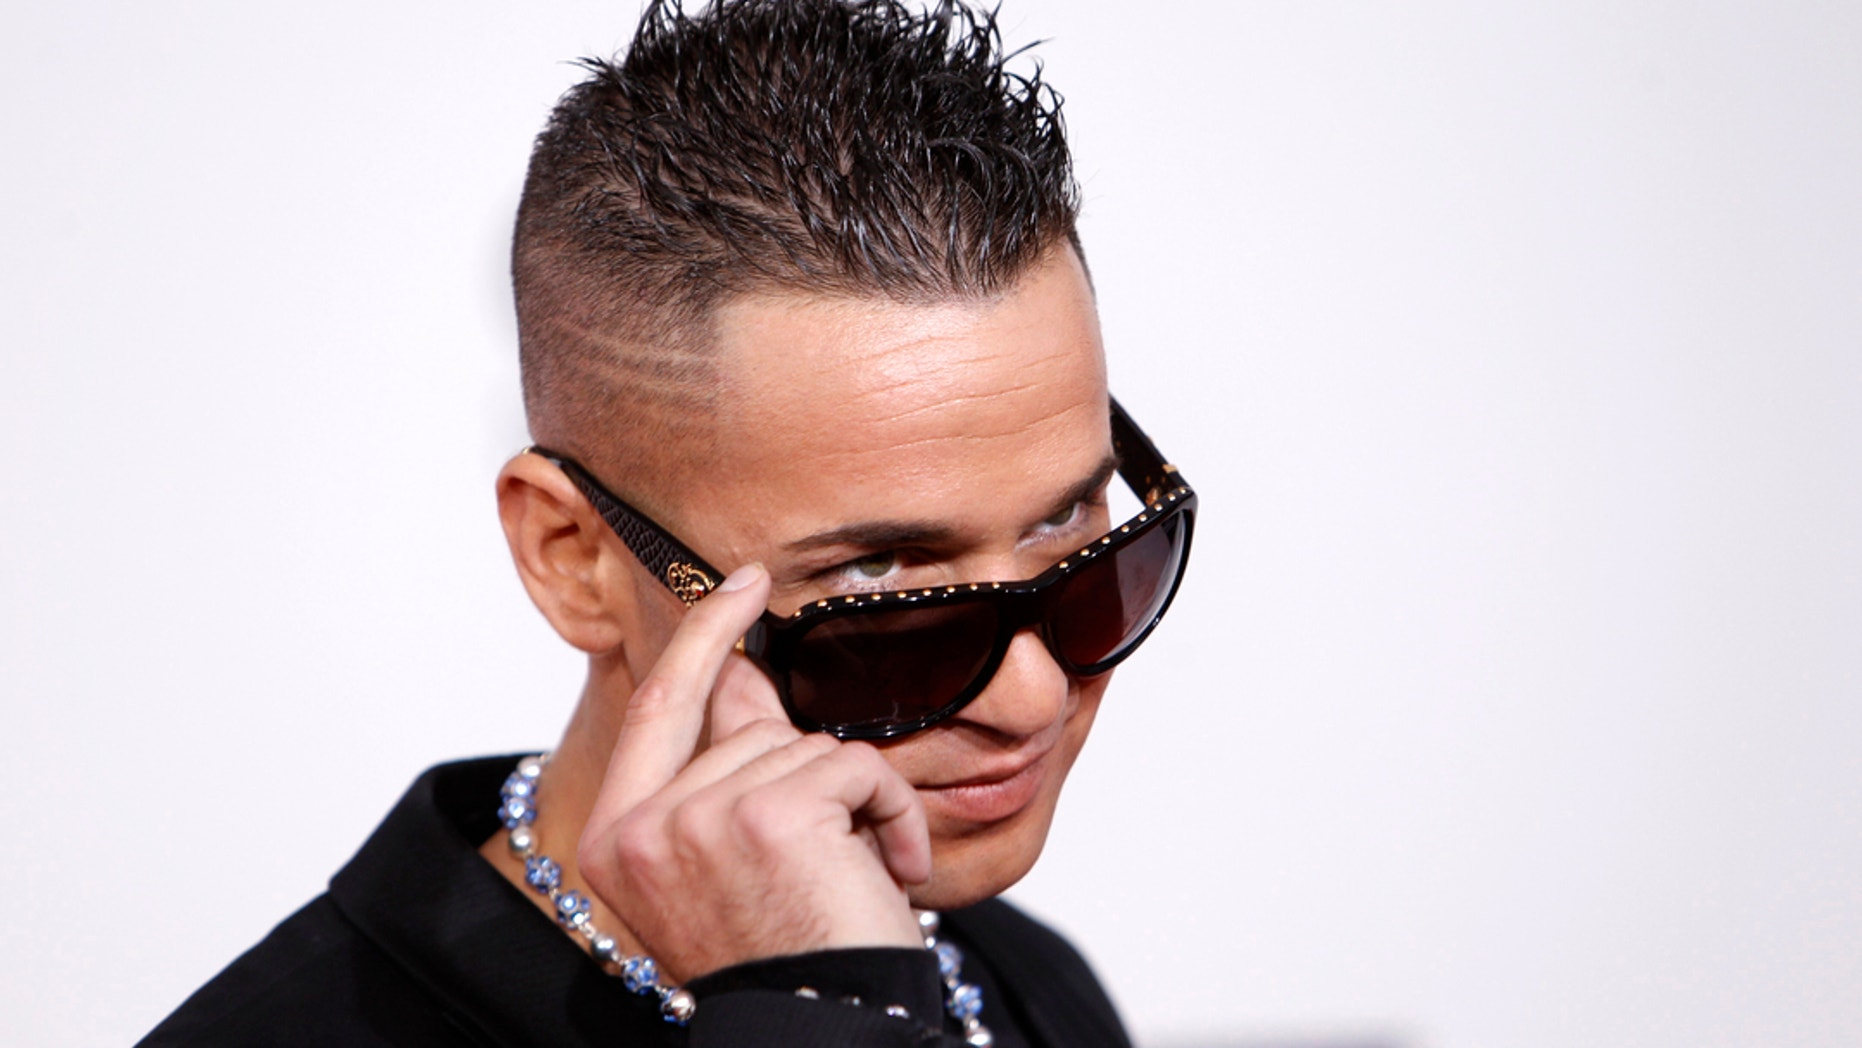 """Jersey Shore"" fans have some questions for MTV producers and the cast after the return of the infamous duck phone."